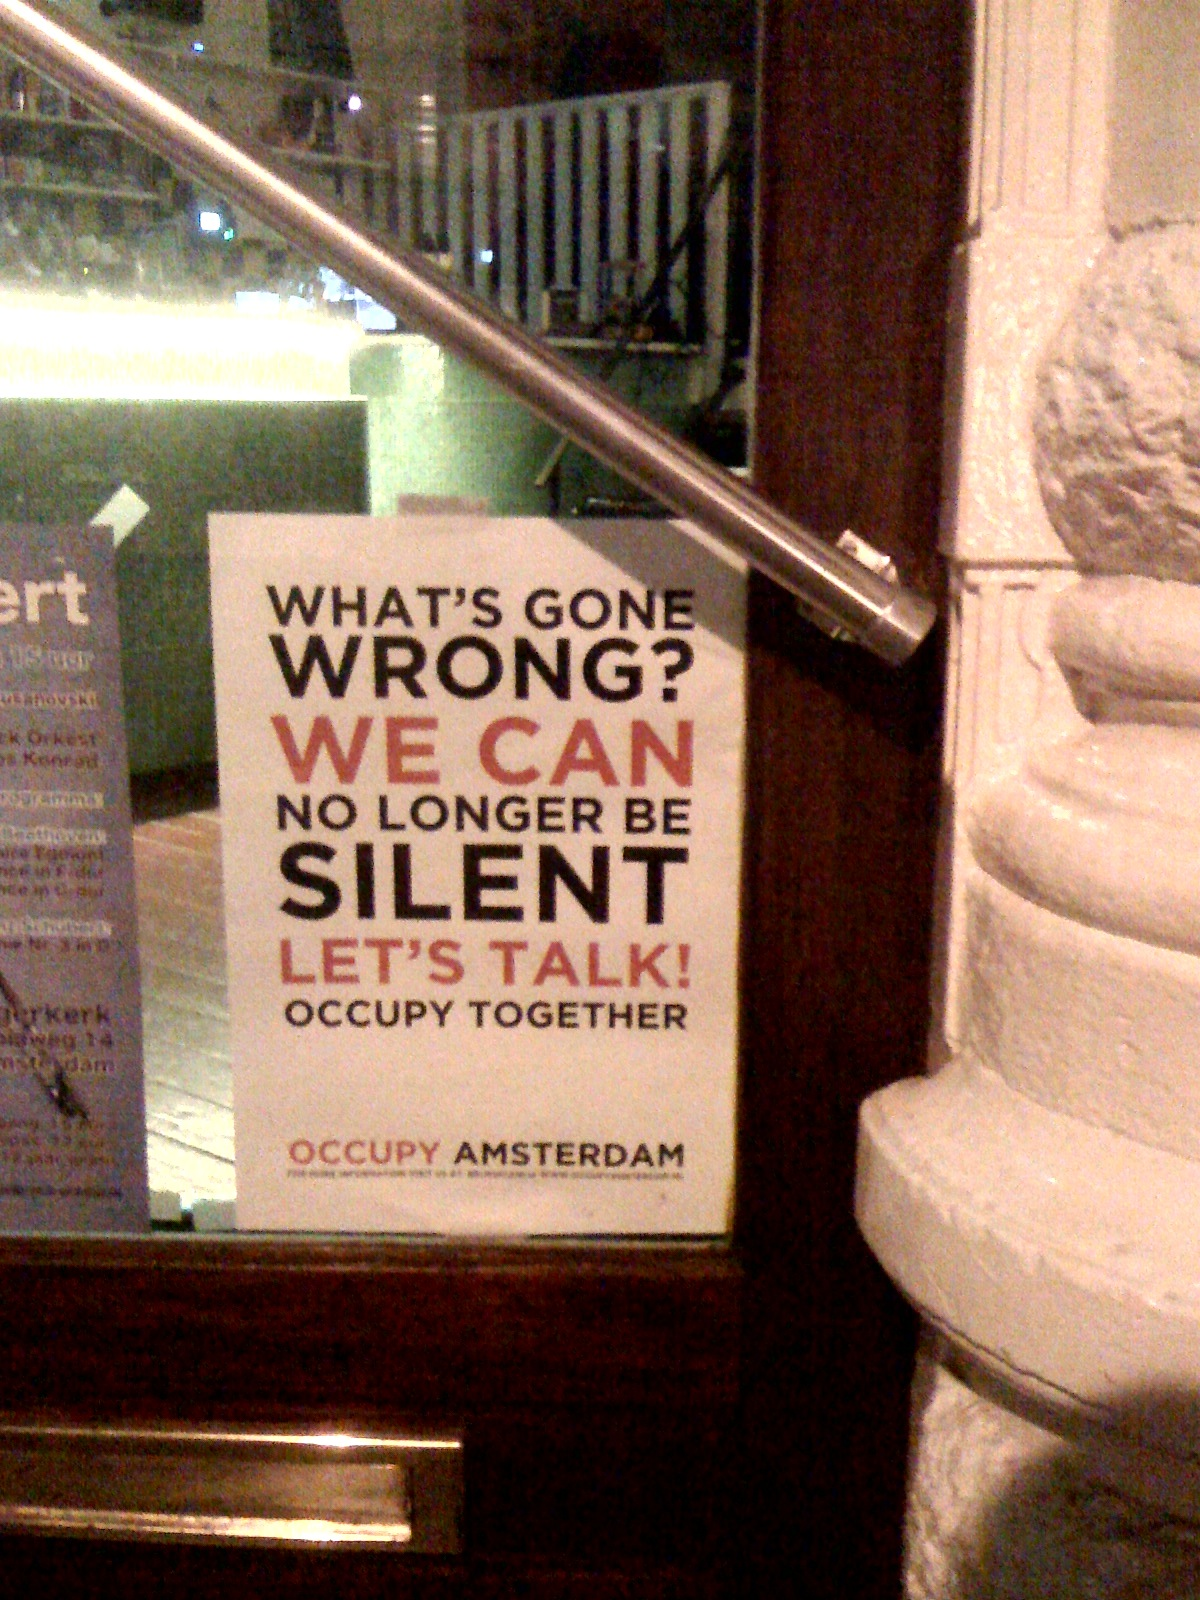 What's gone wrong? We can no longer be silent. Let's talk! #occupy together